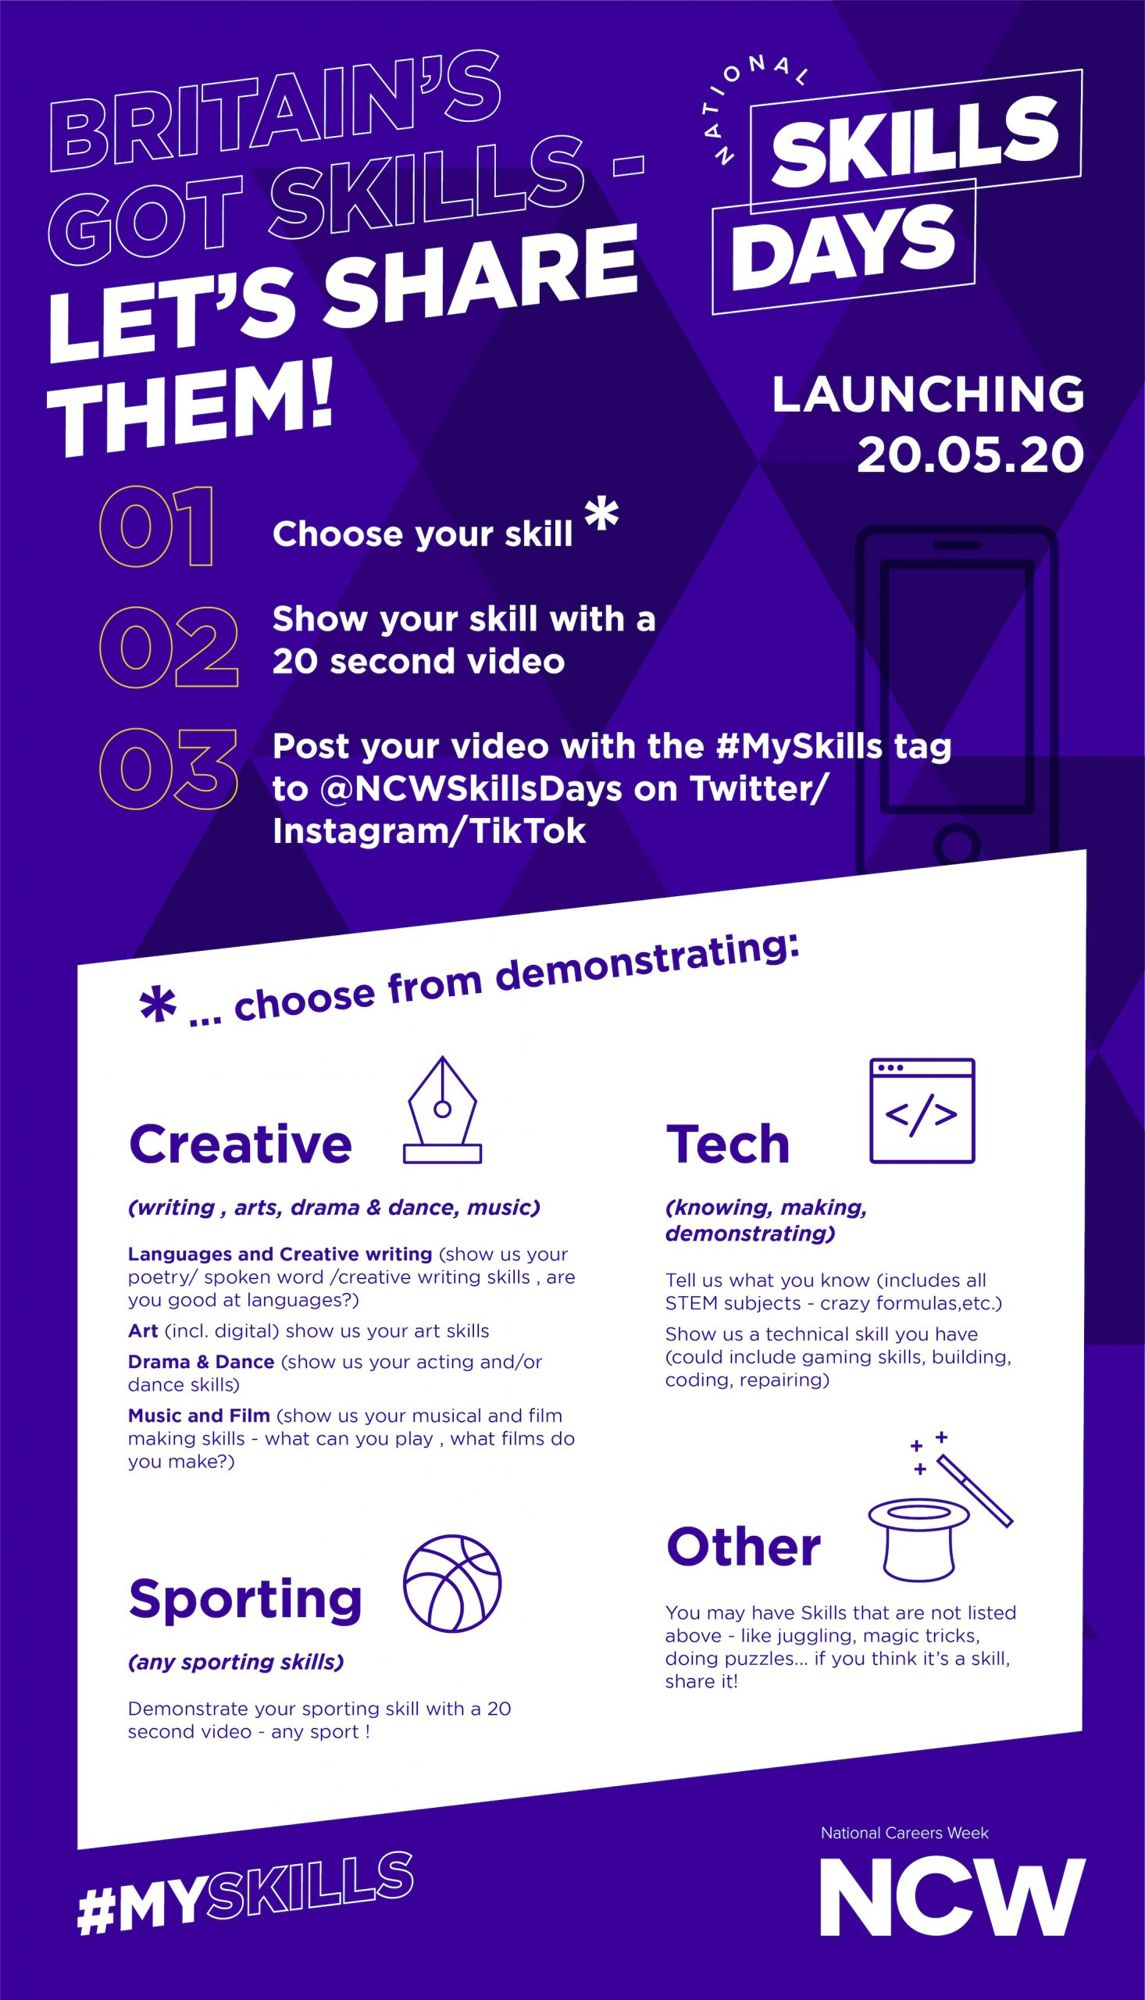 Ncw skills days launch poster 1 scaled